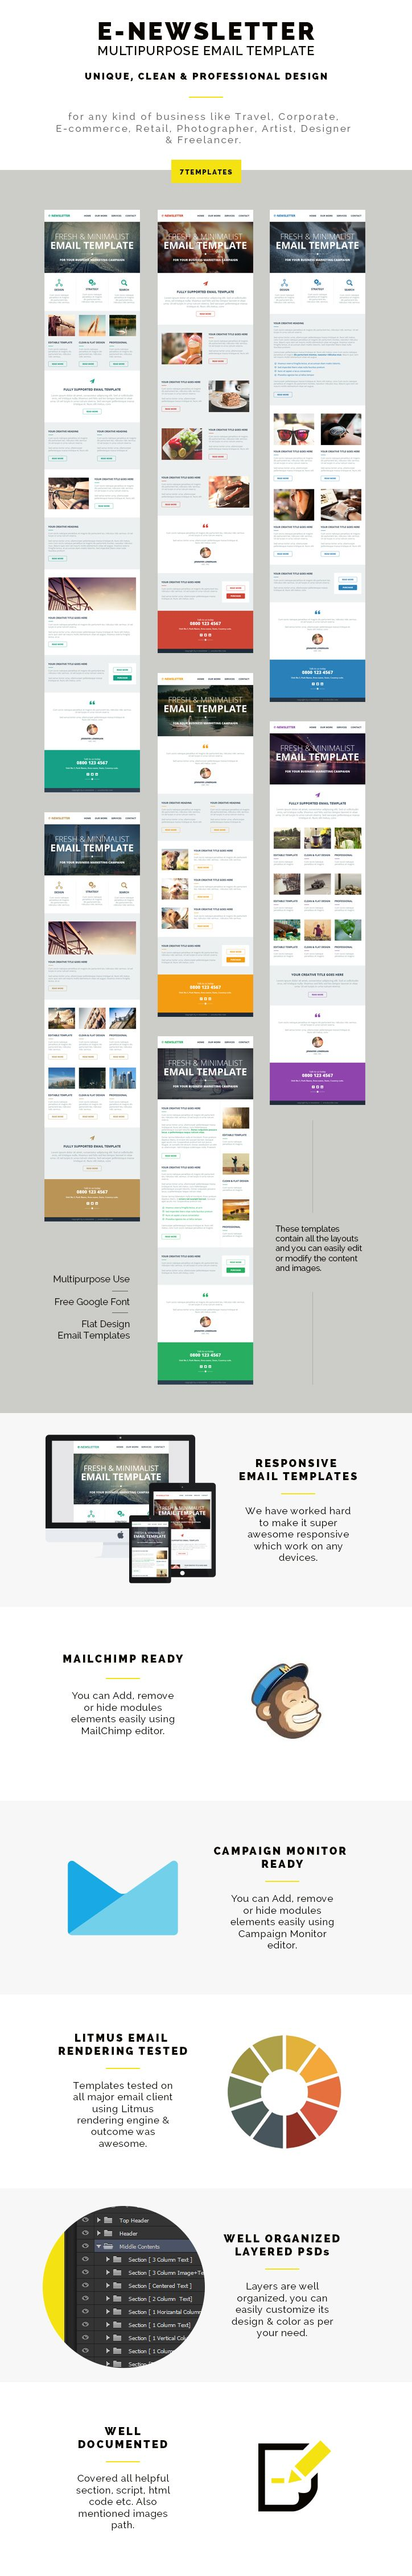 The E-Newsletter – Multipurpose Responsive Email Template comes with 7 different premade templates. There are 4 folders inside the tempaltes folder named 'HTML, 'Mailchimp', 'Campaign Monitor. & PSD.These templates contain all the layouts and you can easily edit or modify the content and images.